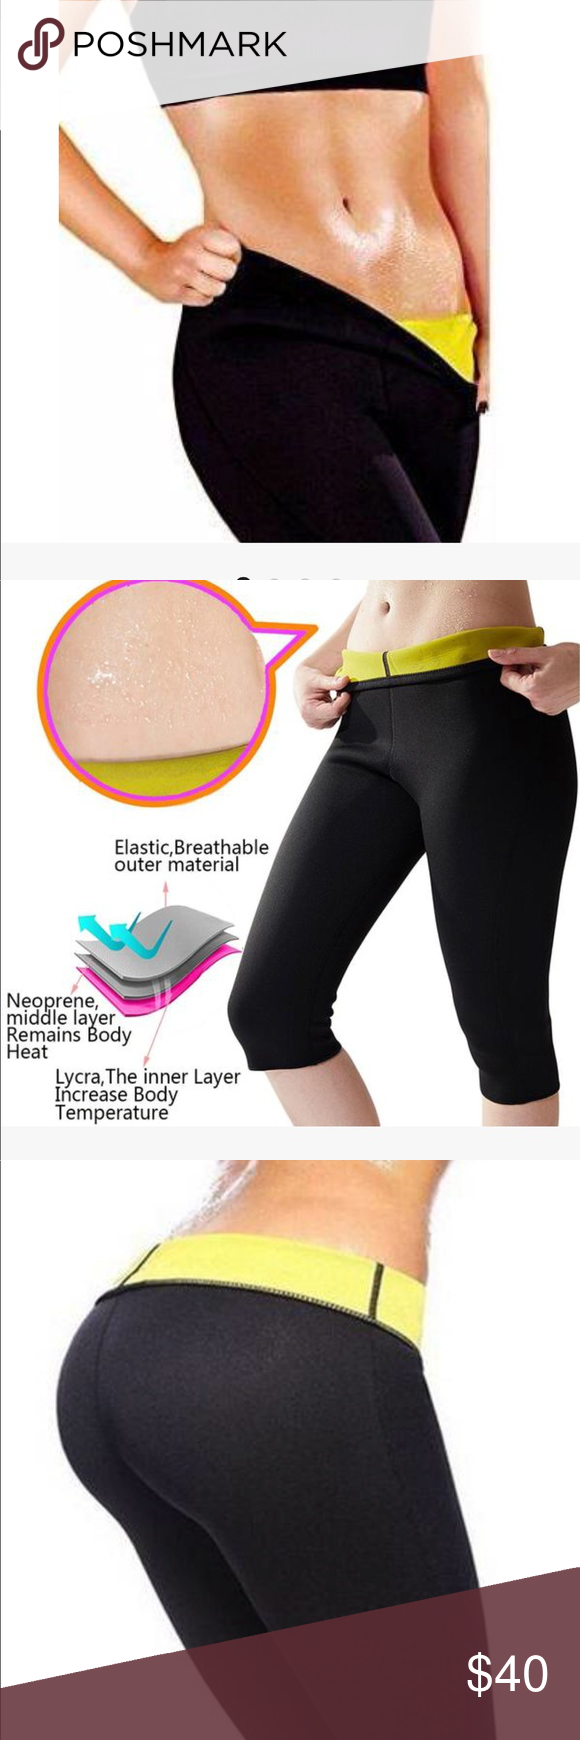 f740391d8f0 THERMO COMPRESSION CAPRIS - TONE YOUR LEGS Patented design that helps you  lose up to 5